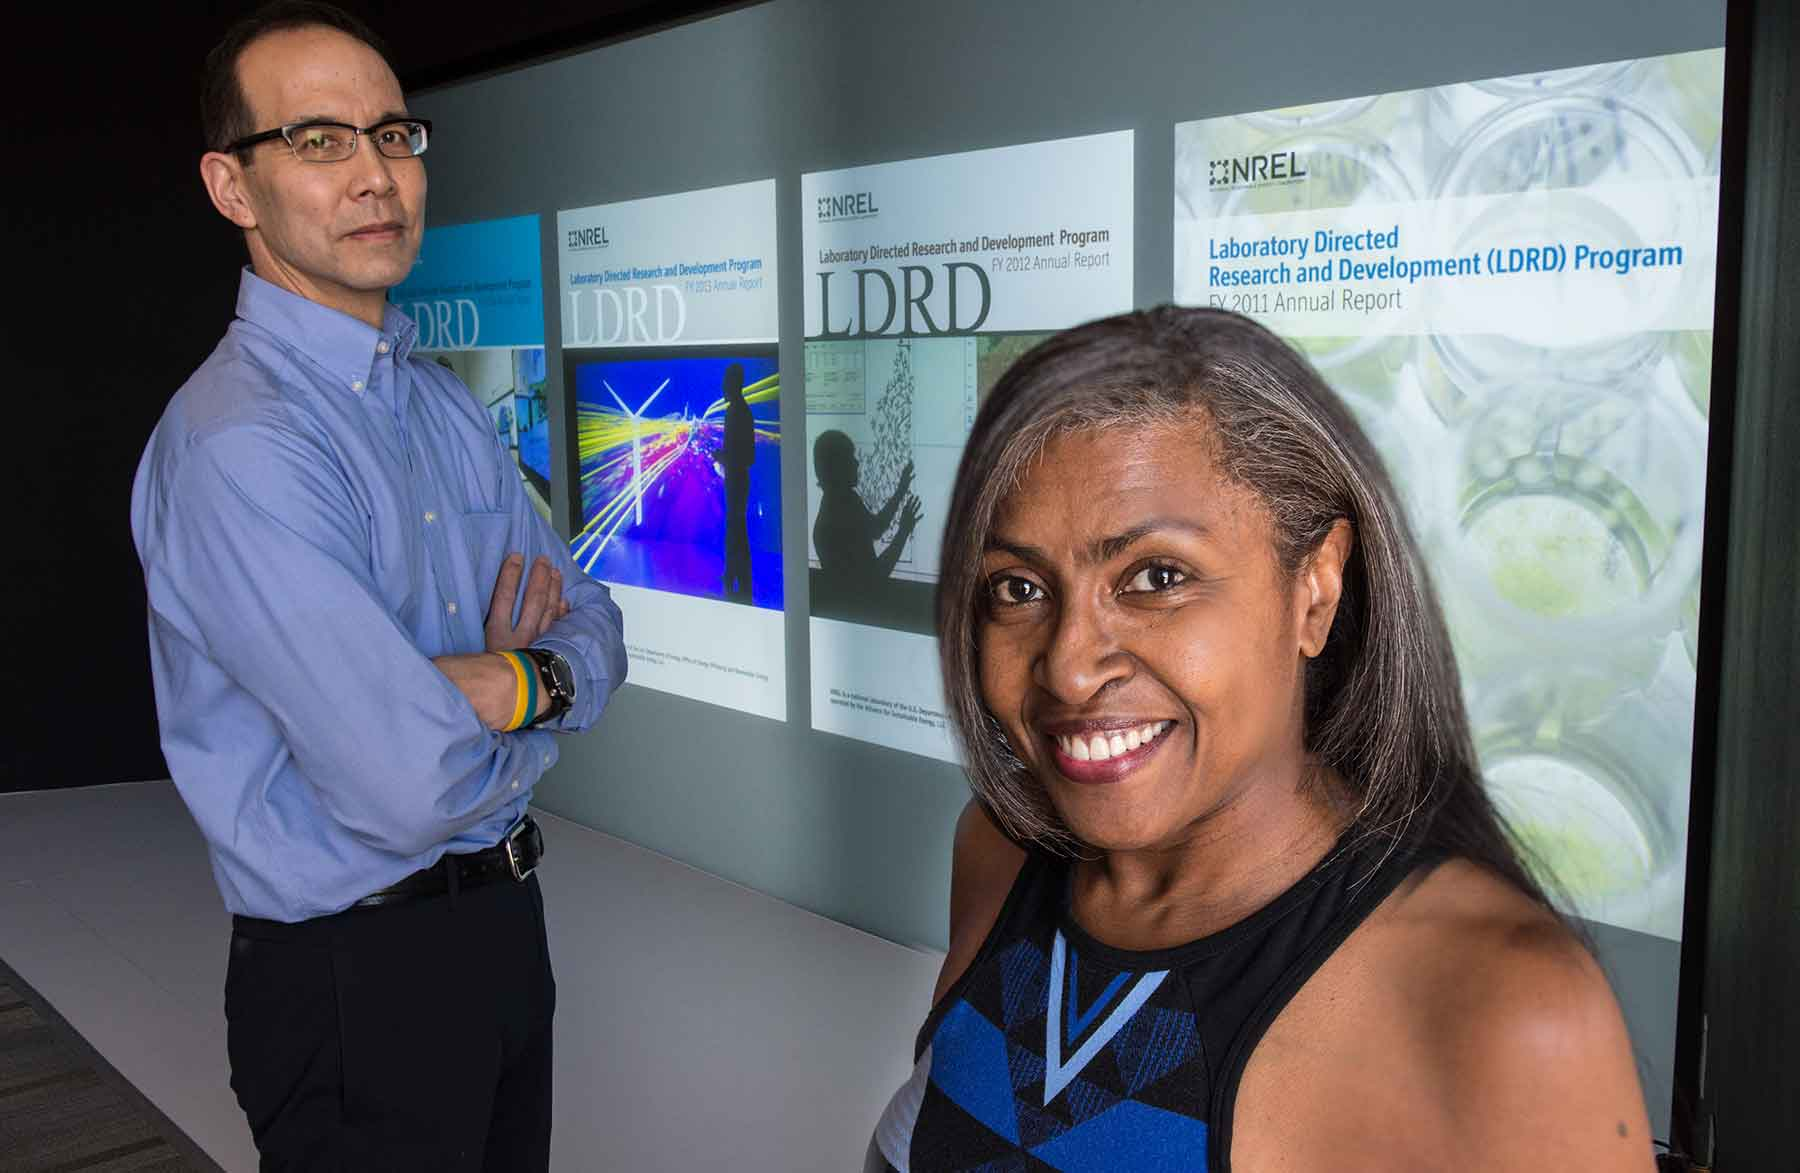 Two people stand in front of a screen displaying reports about NREL's LDRD program.